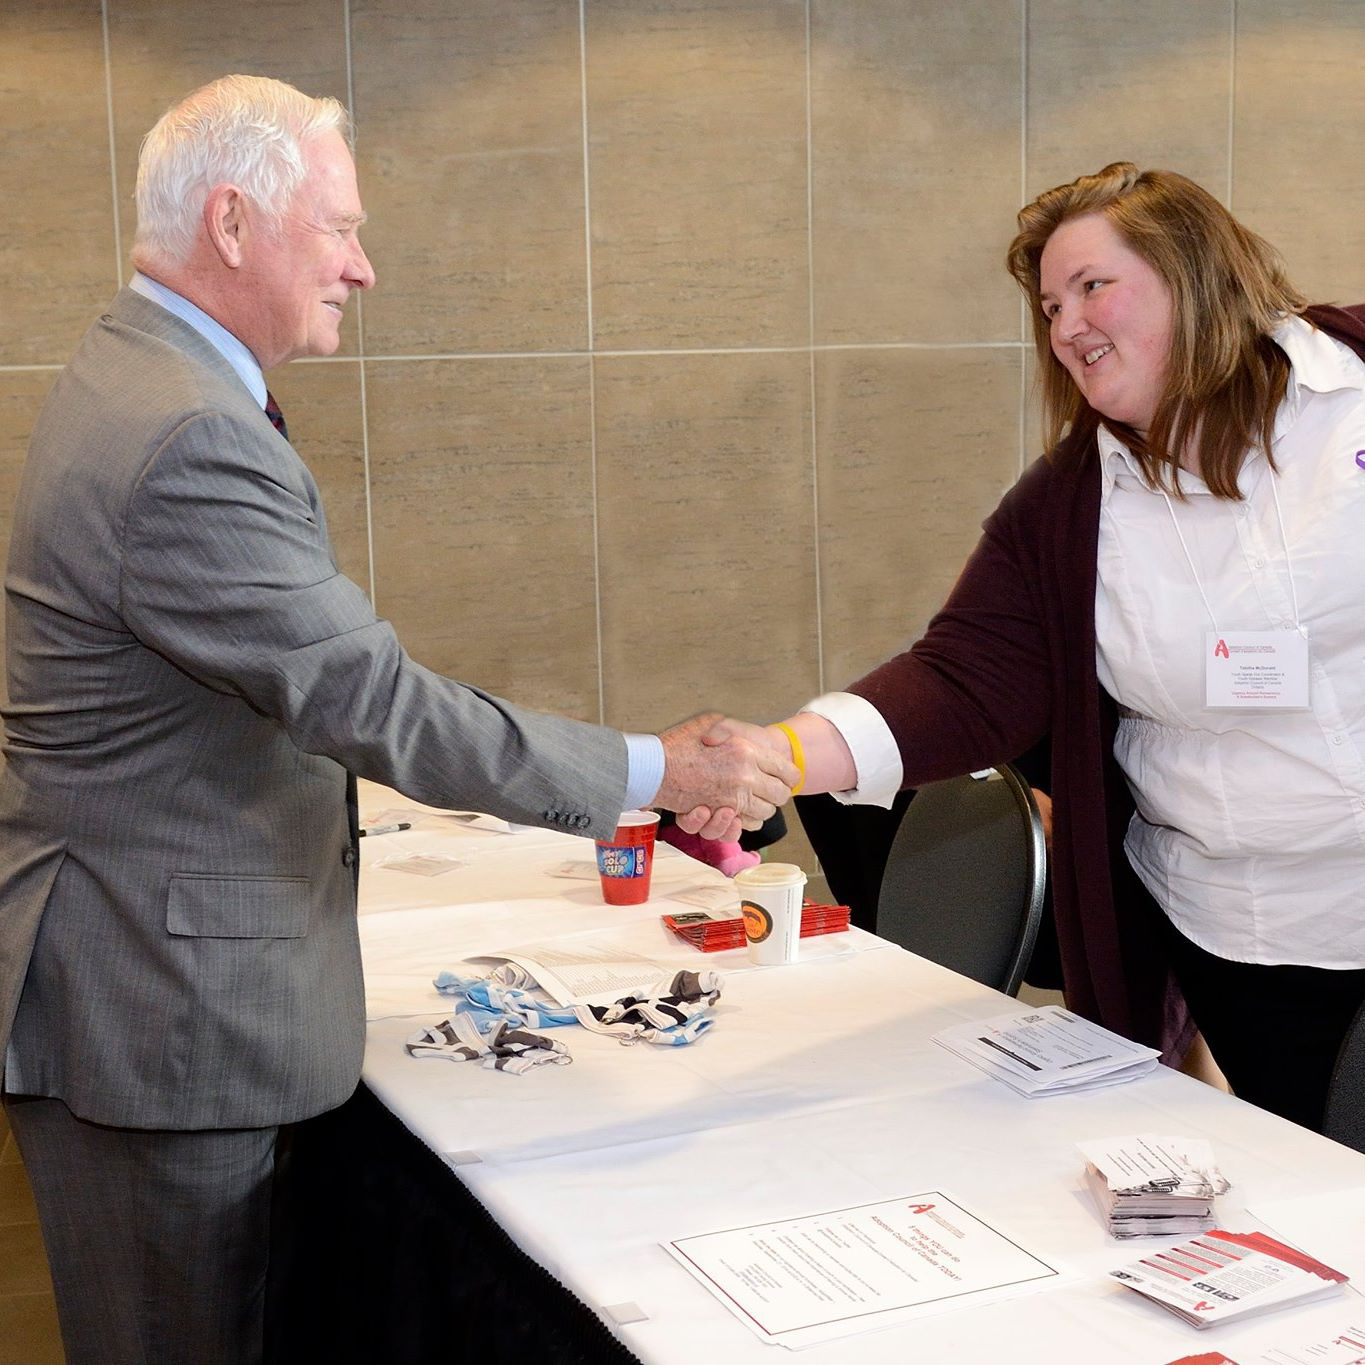 Tabitha shaking hands with Our Governor General the Honourable David Johnston at the Adoption Council of Canada's Urgency Around Permanency Summit.